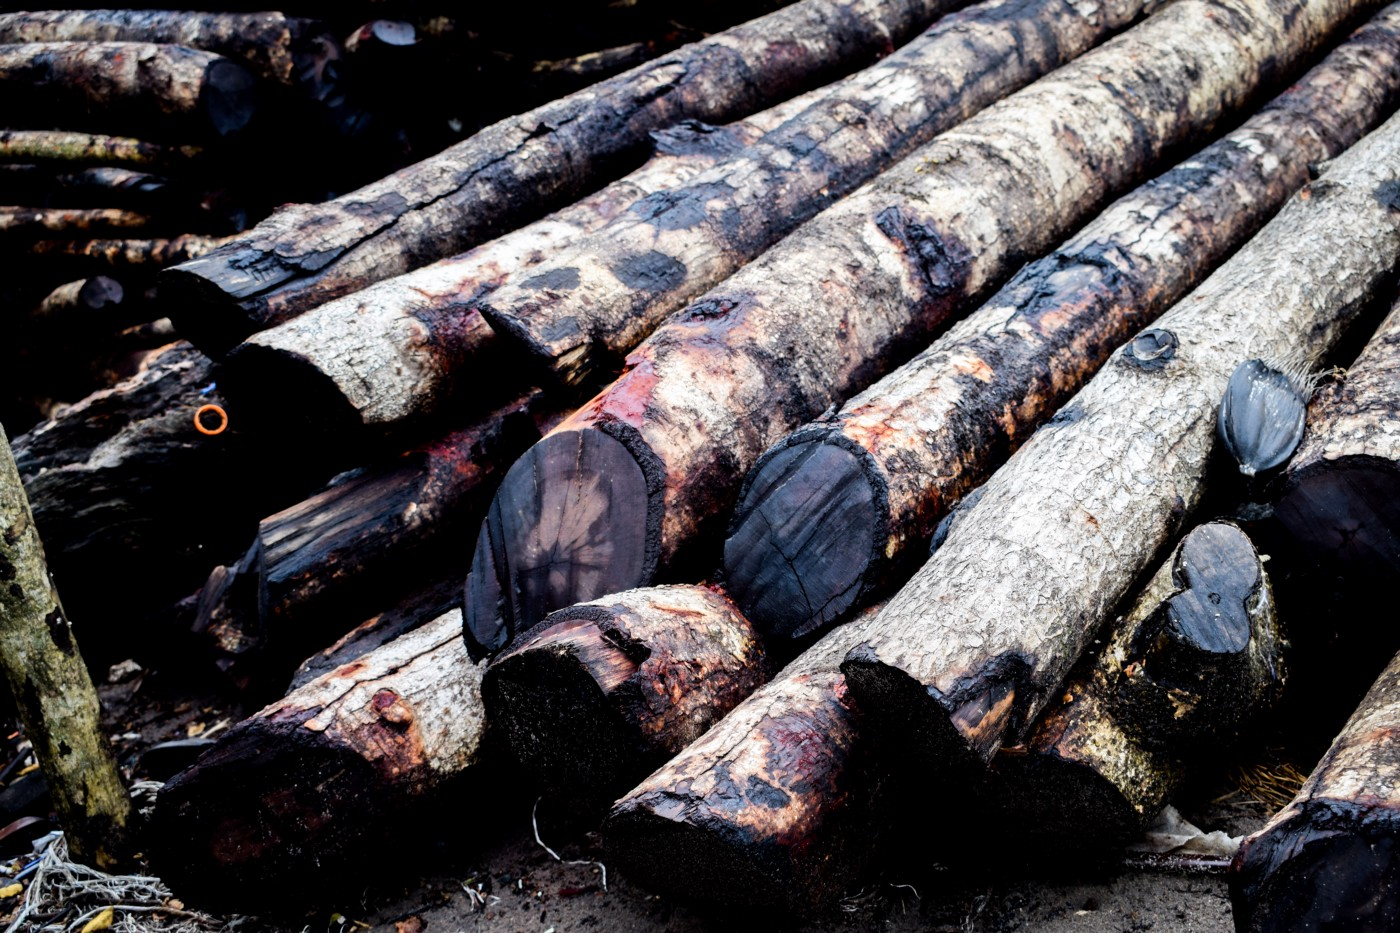 A close-up photograph of a stacked pile of 10 to 15 logs, showing their cut ends.